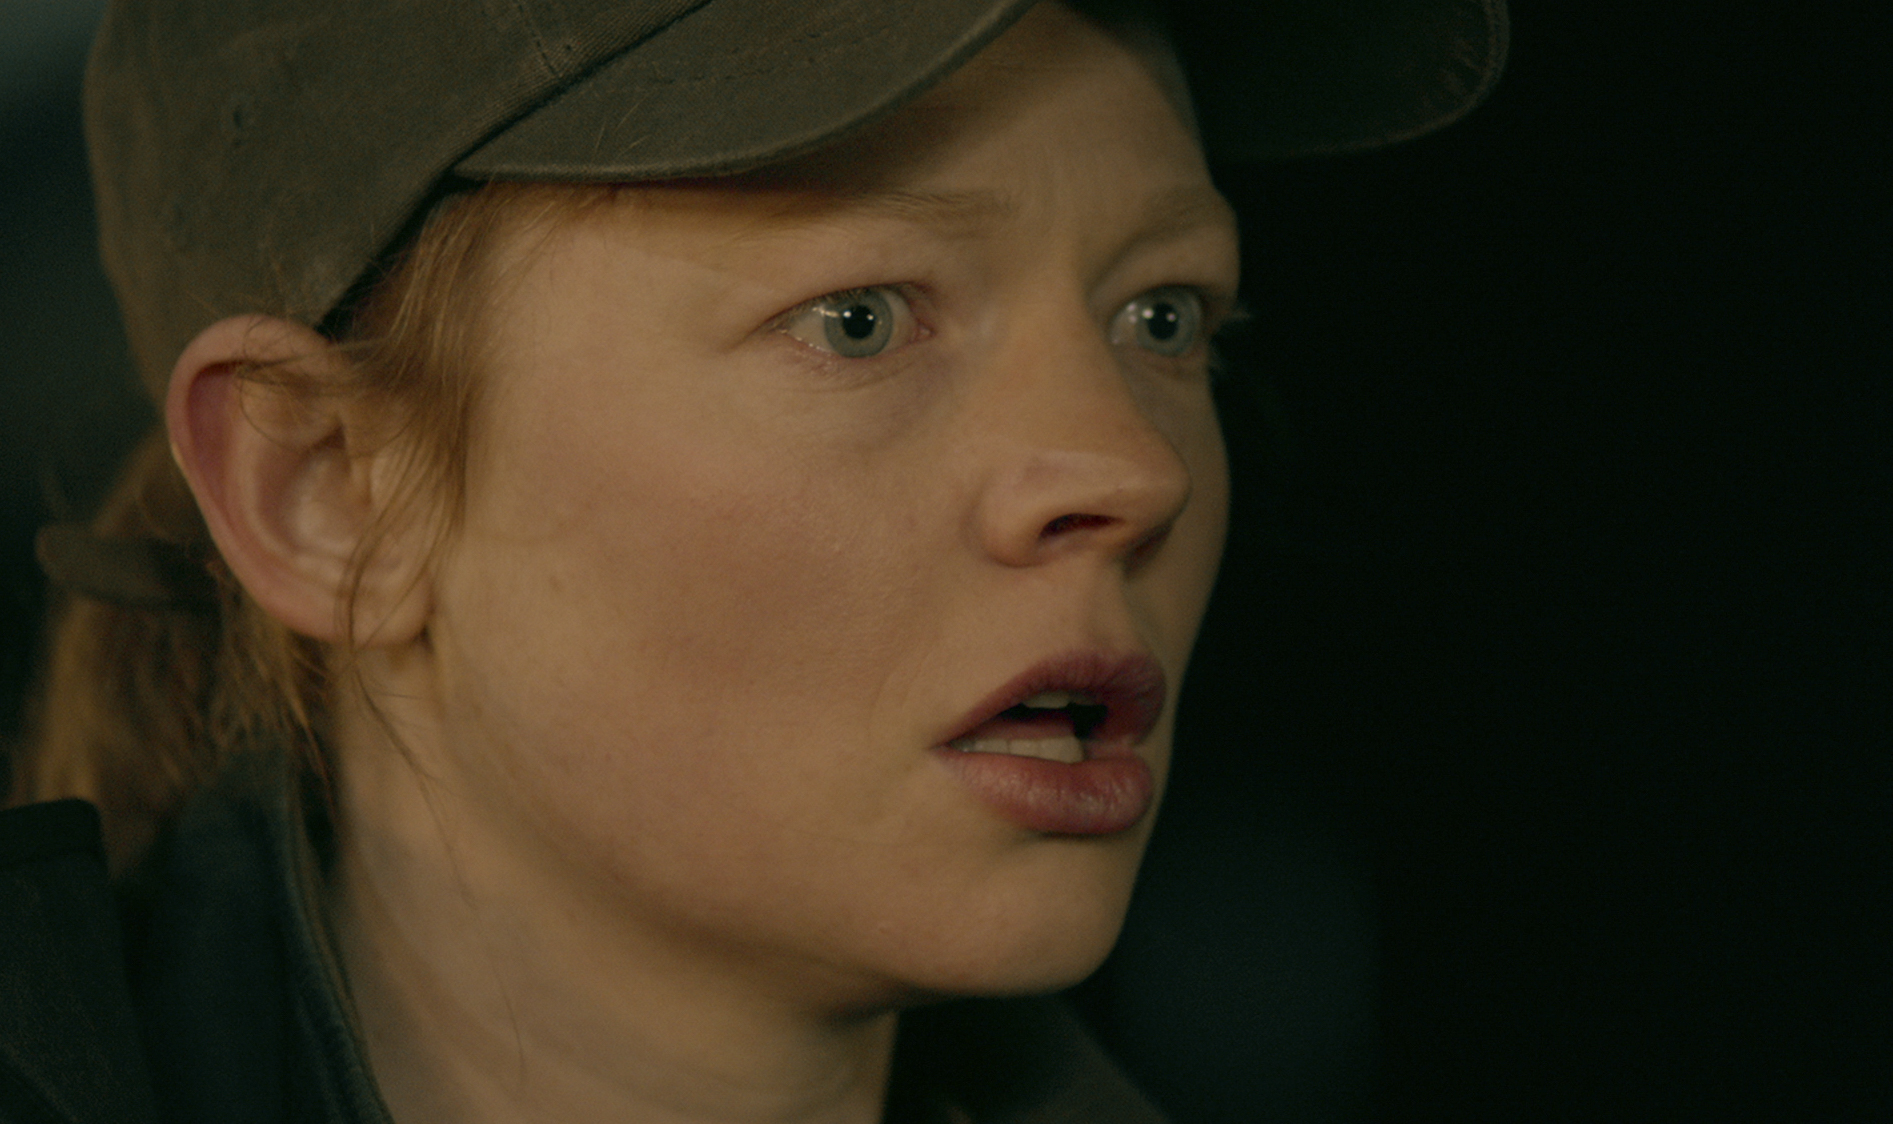 Sarah Snook CloseUp#1